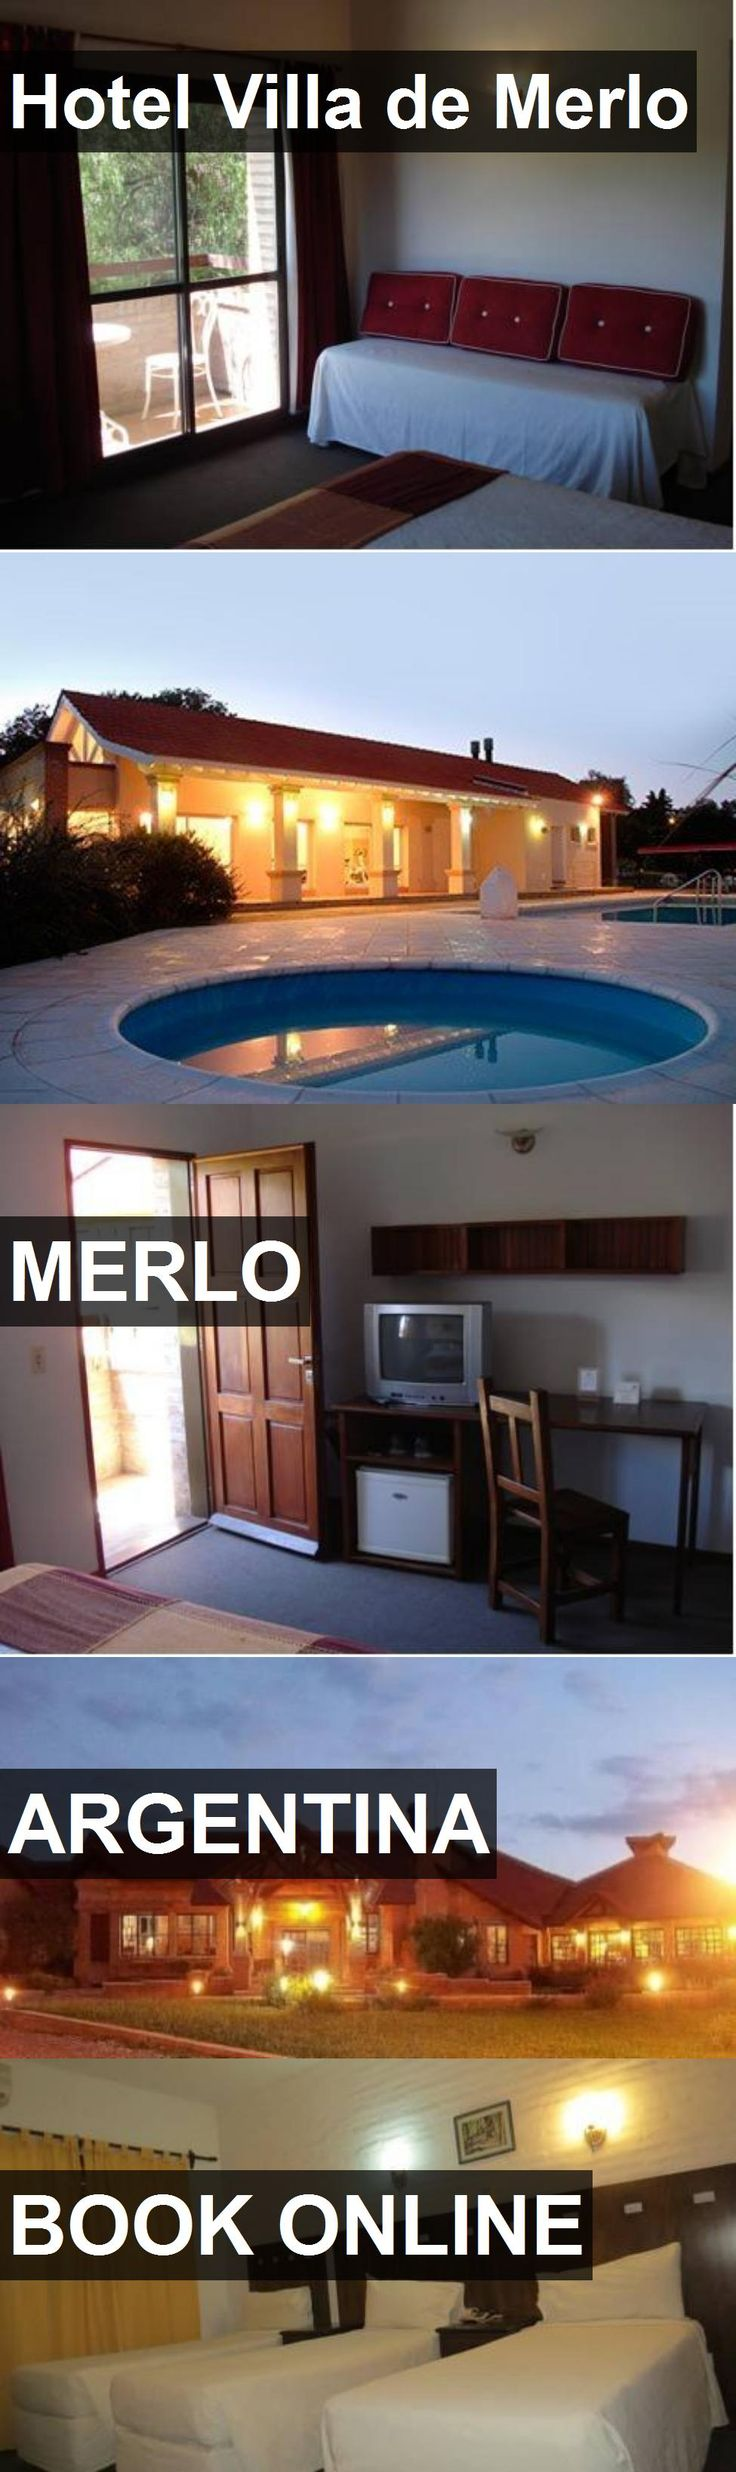 Hotel Hotel Villa de Merlo in Merlo, Argentina. For more information, photos, reviews and best prices please follow the link. #Argentina #Merlo #HotelVilladeMerlo #hotel #travel #vacation